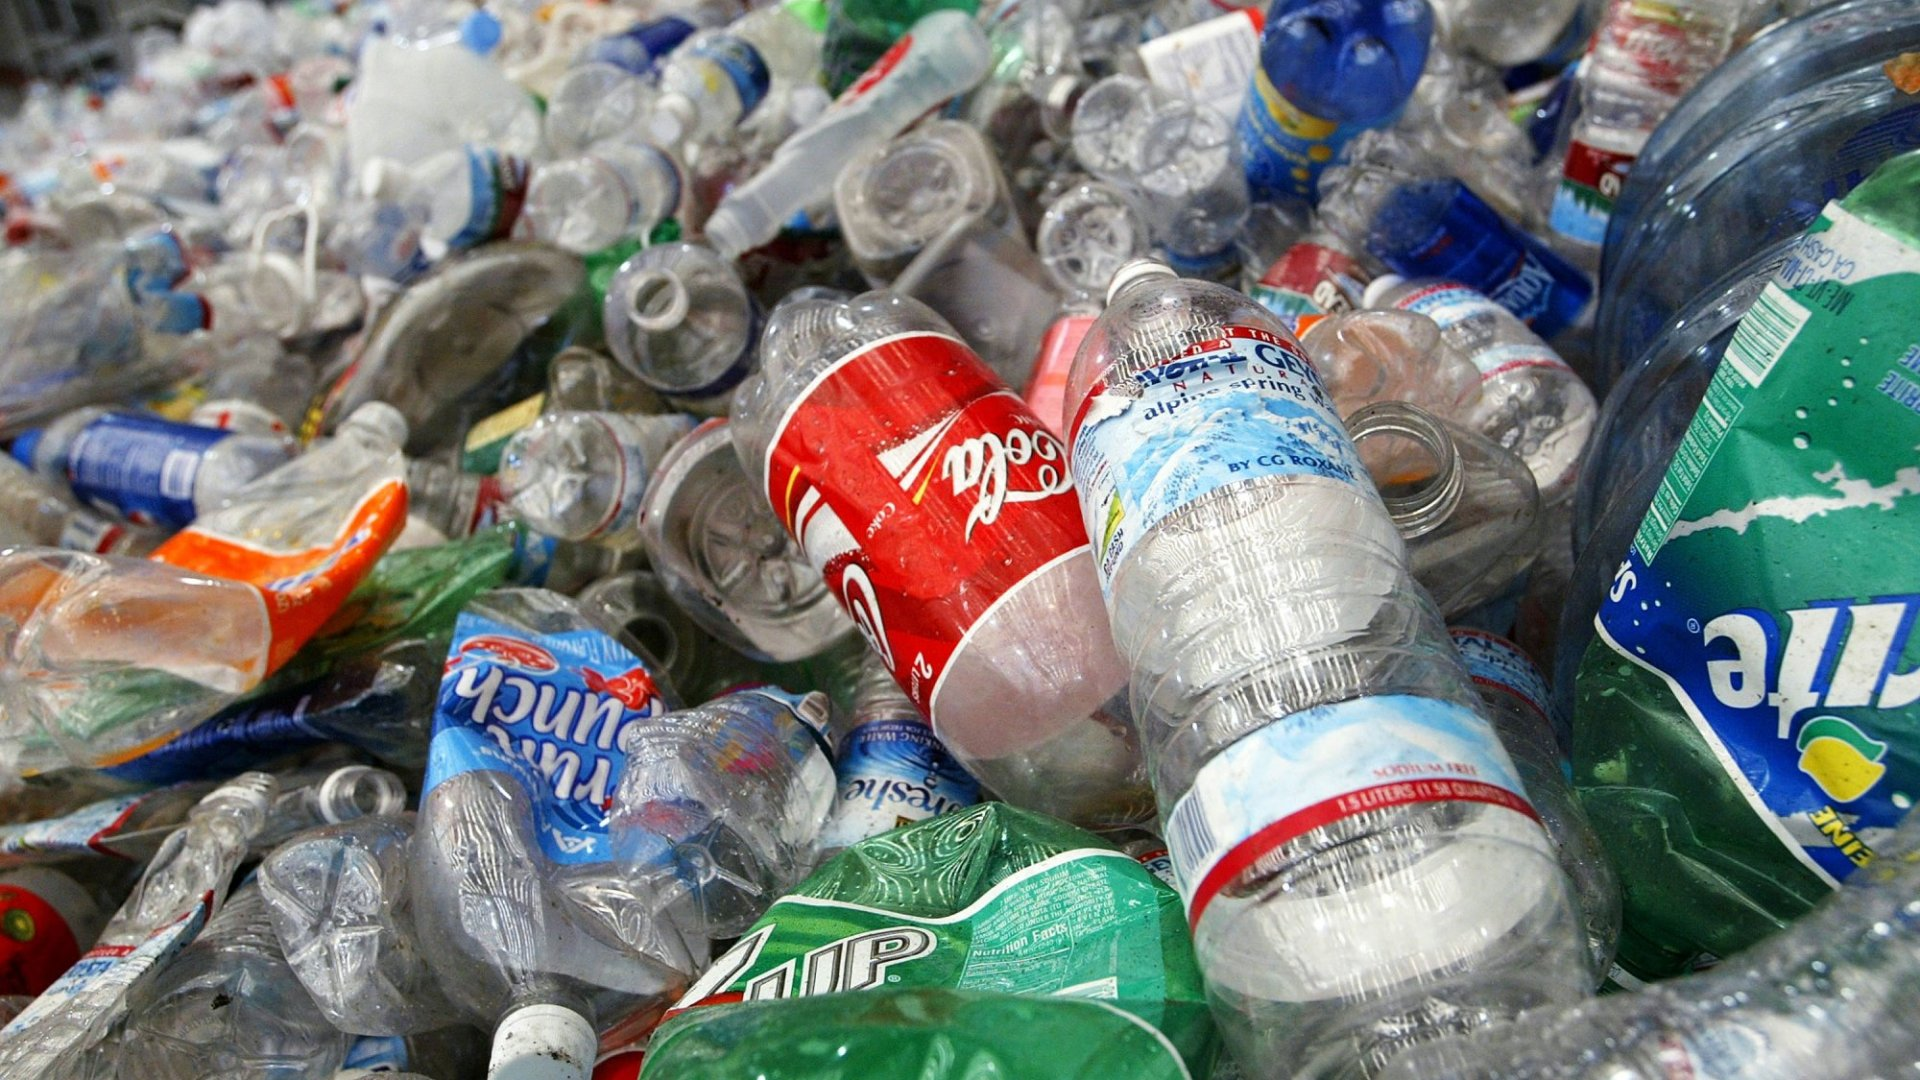 Should We Stop Recycling? The Answer Might Surprise You